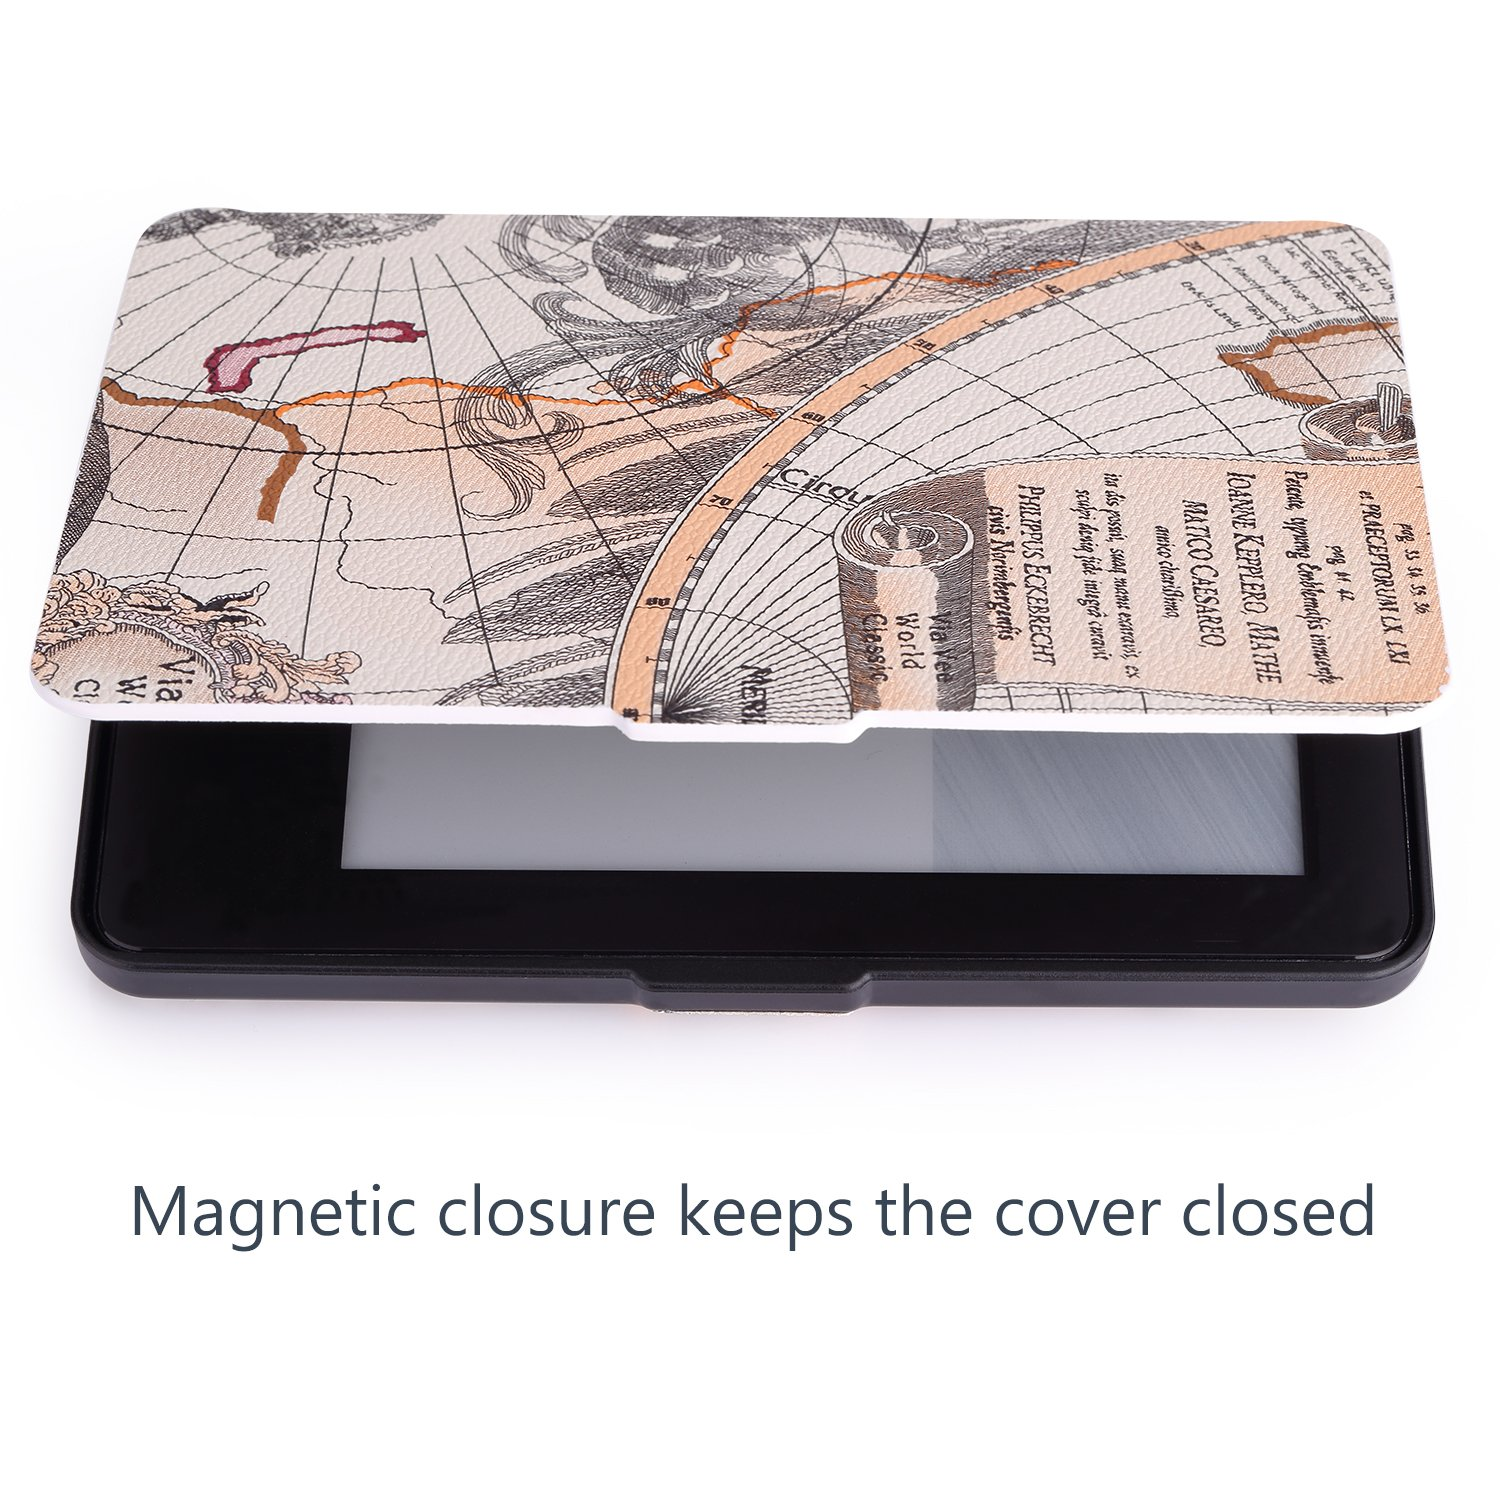 MoKo Case for Amazon Kindle 7th Gen - Ultra Lightweight Shell Case Stand Cover Case for Amazon Kindle 2014 ( 7th Generation ), Map A by MoKo (Image #6)